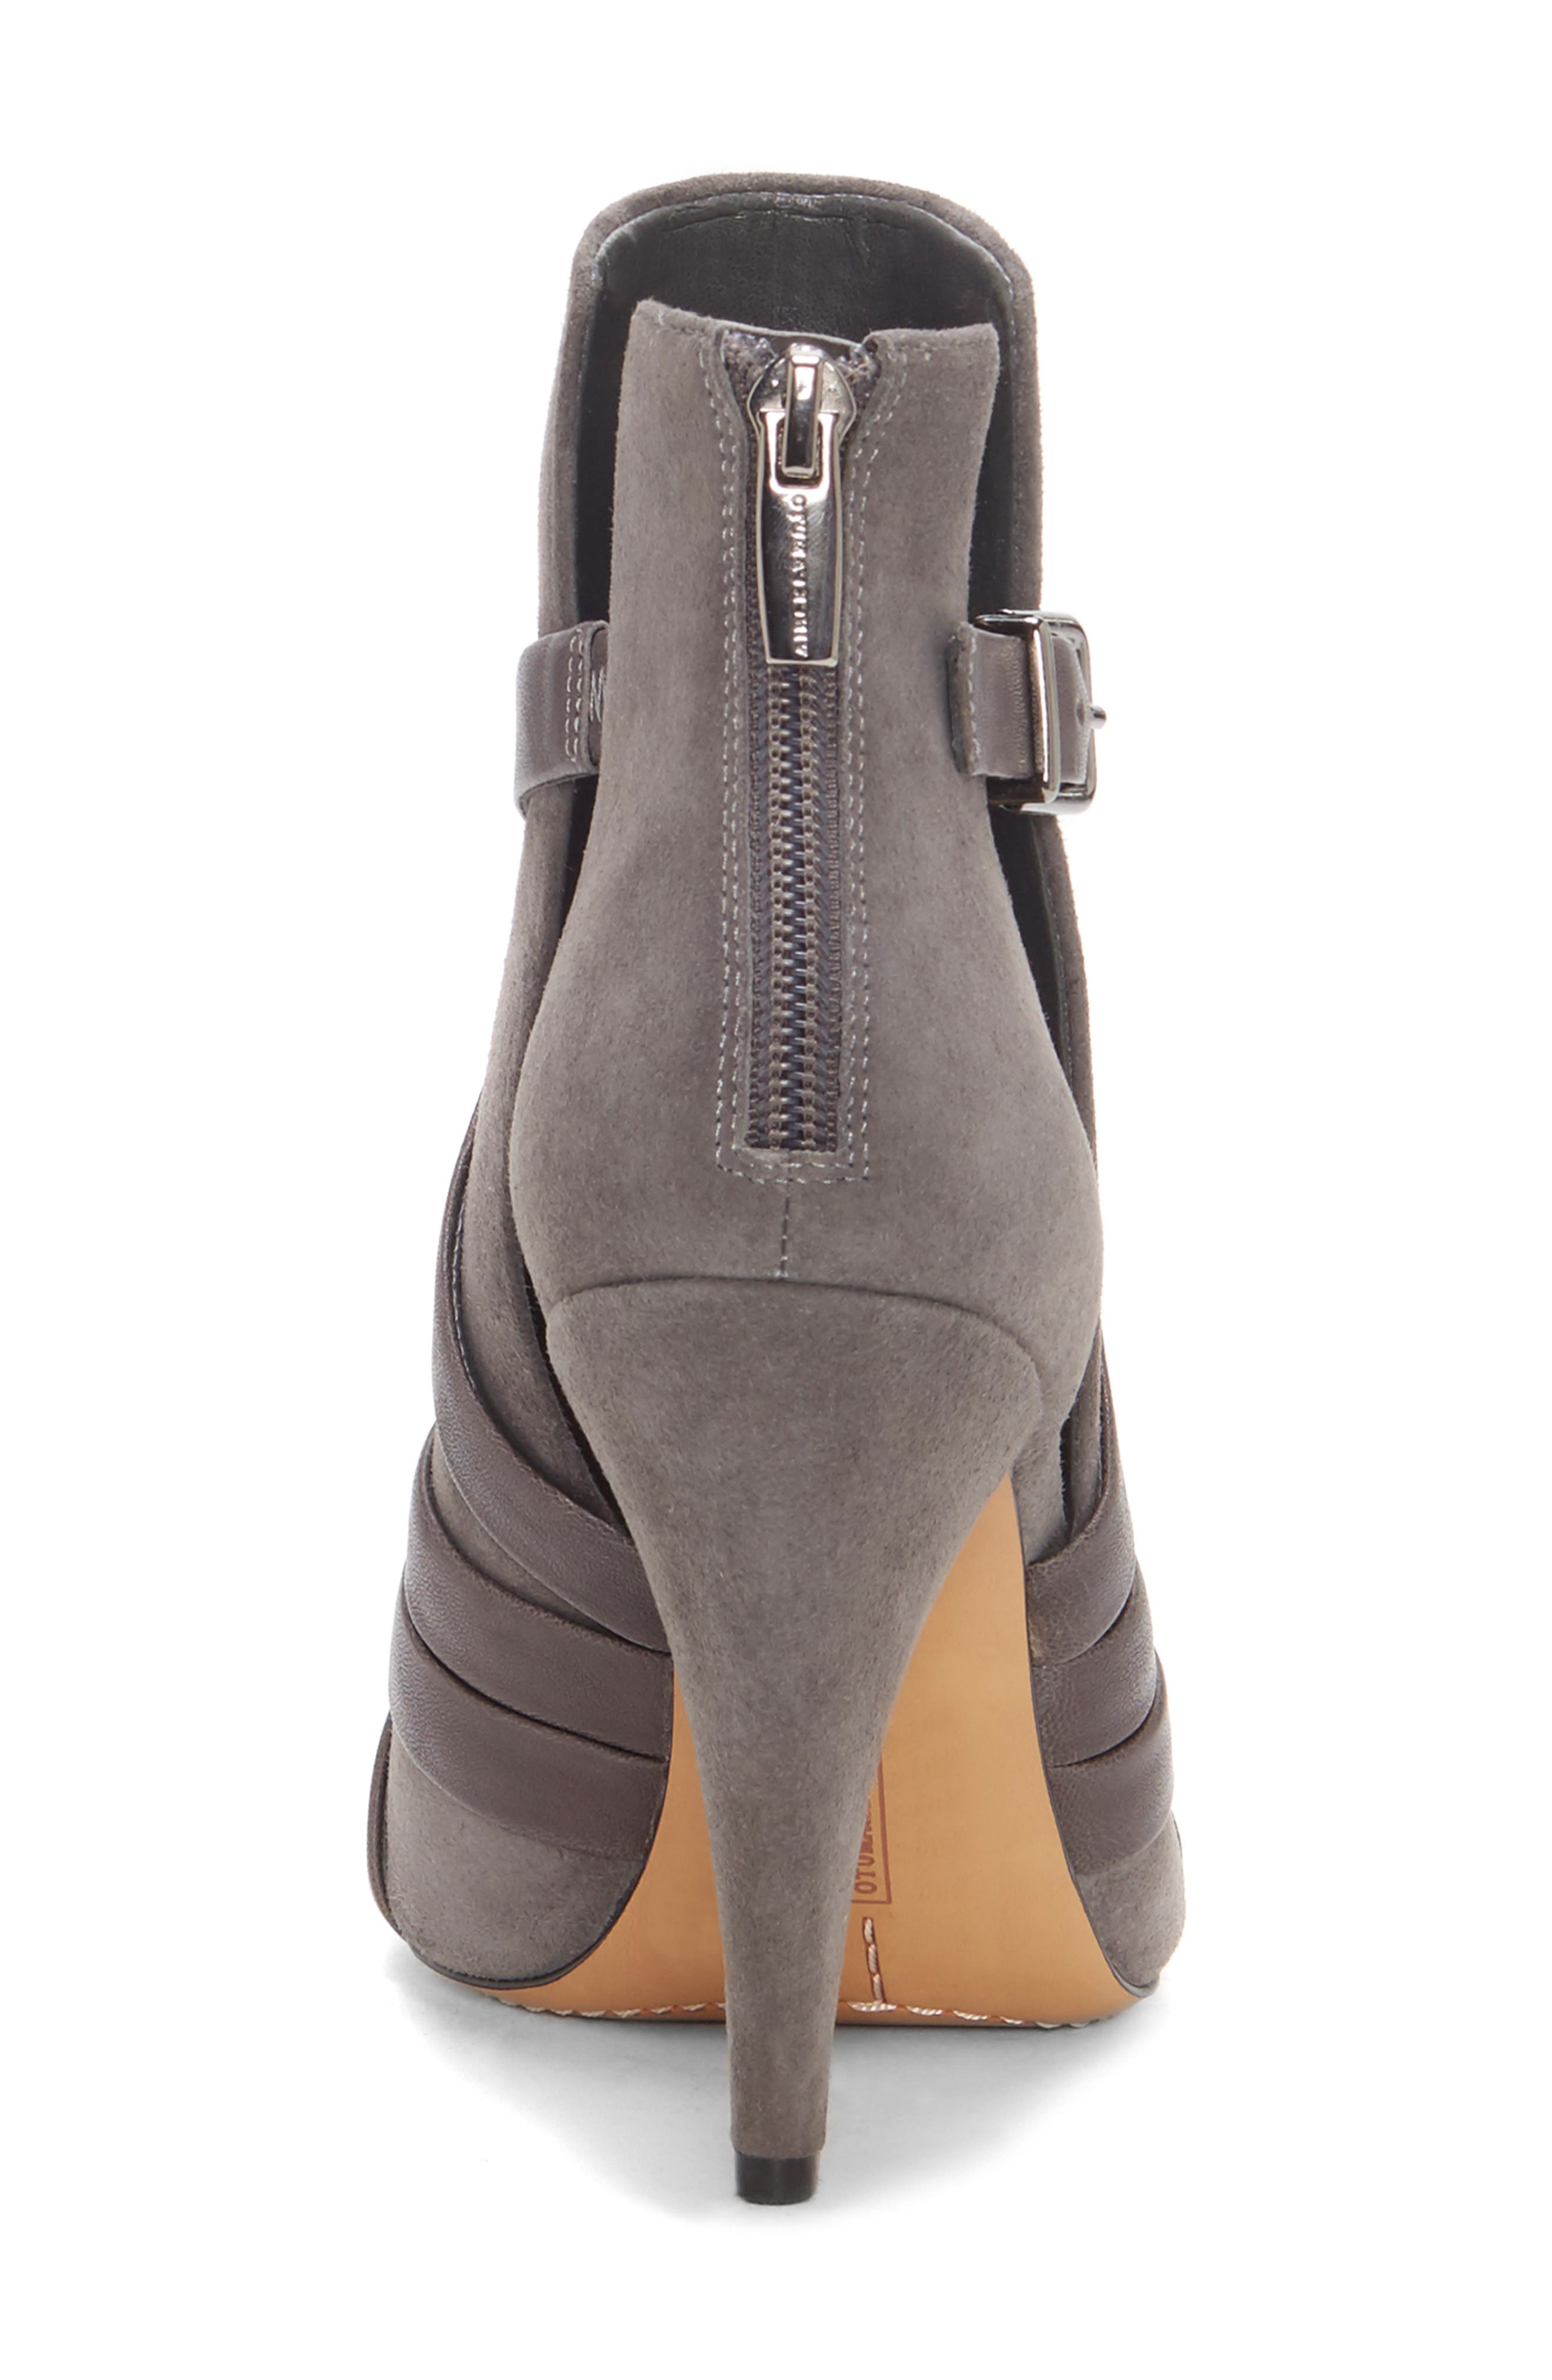 Achika Belted Peep Toe Bootie,                             Alternate thumbnail 7, color,                             POWER GREY LEATHER